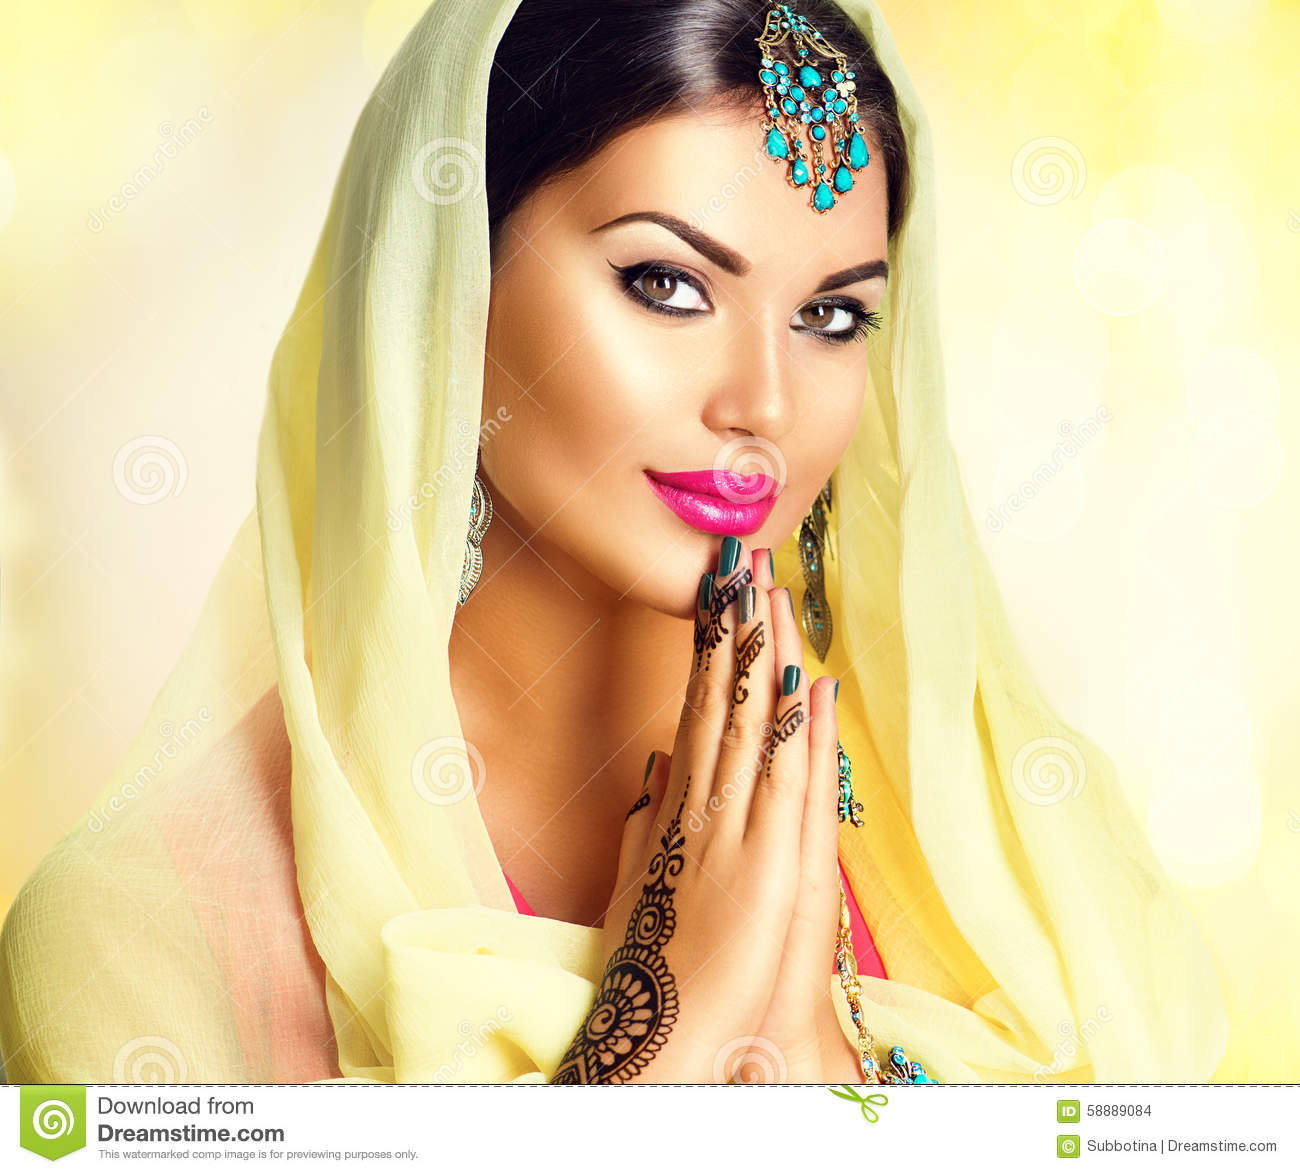 Smiling Face Girl Wallpaper India Beauty Indian Girl With Mehndi Tattoos Hold Palms Together